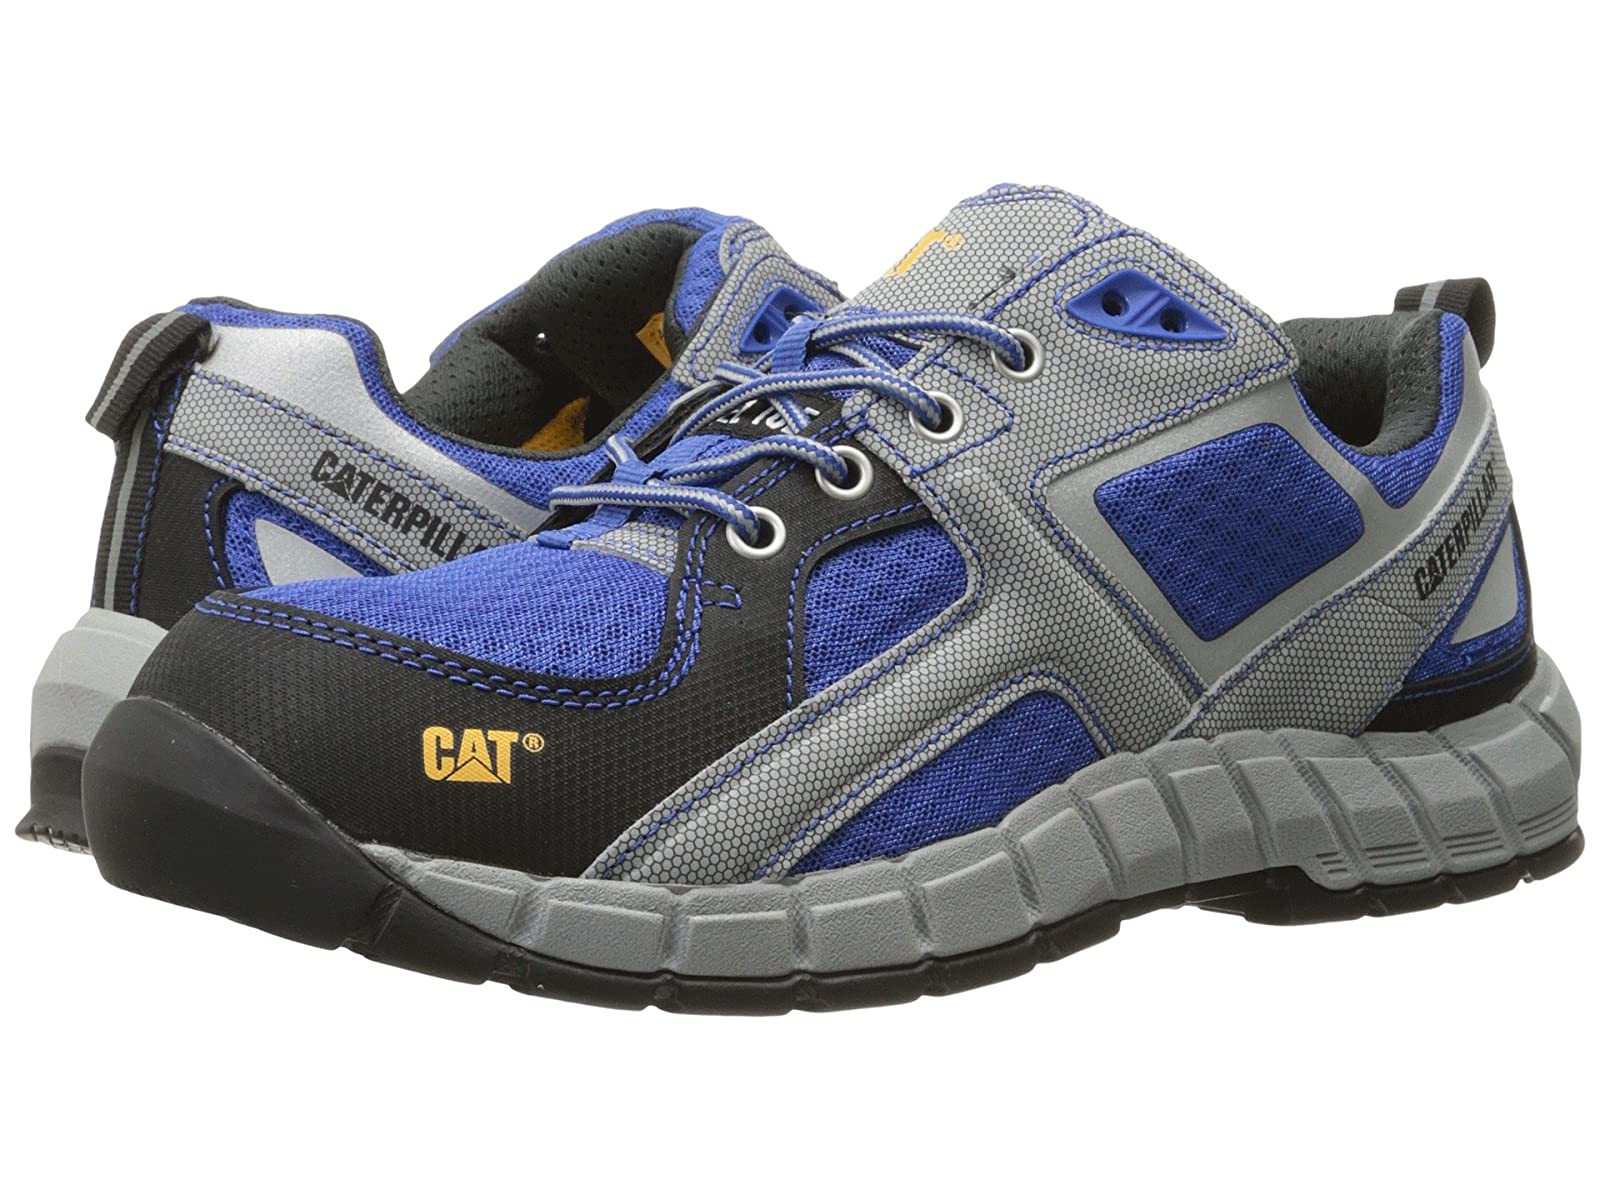 Caterpillar Gain Steel ToeAtmospheric grades have affordable shoes